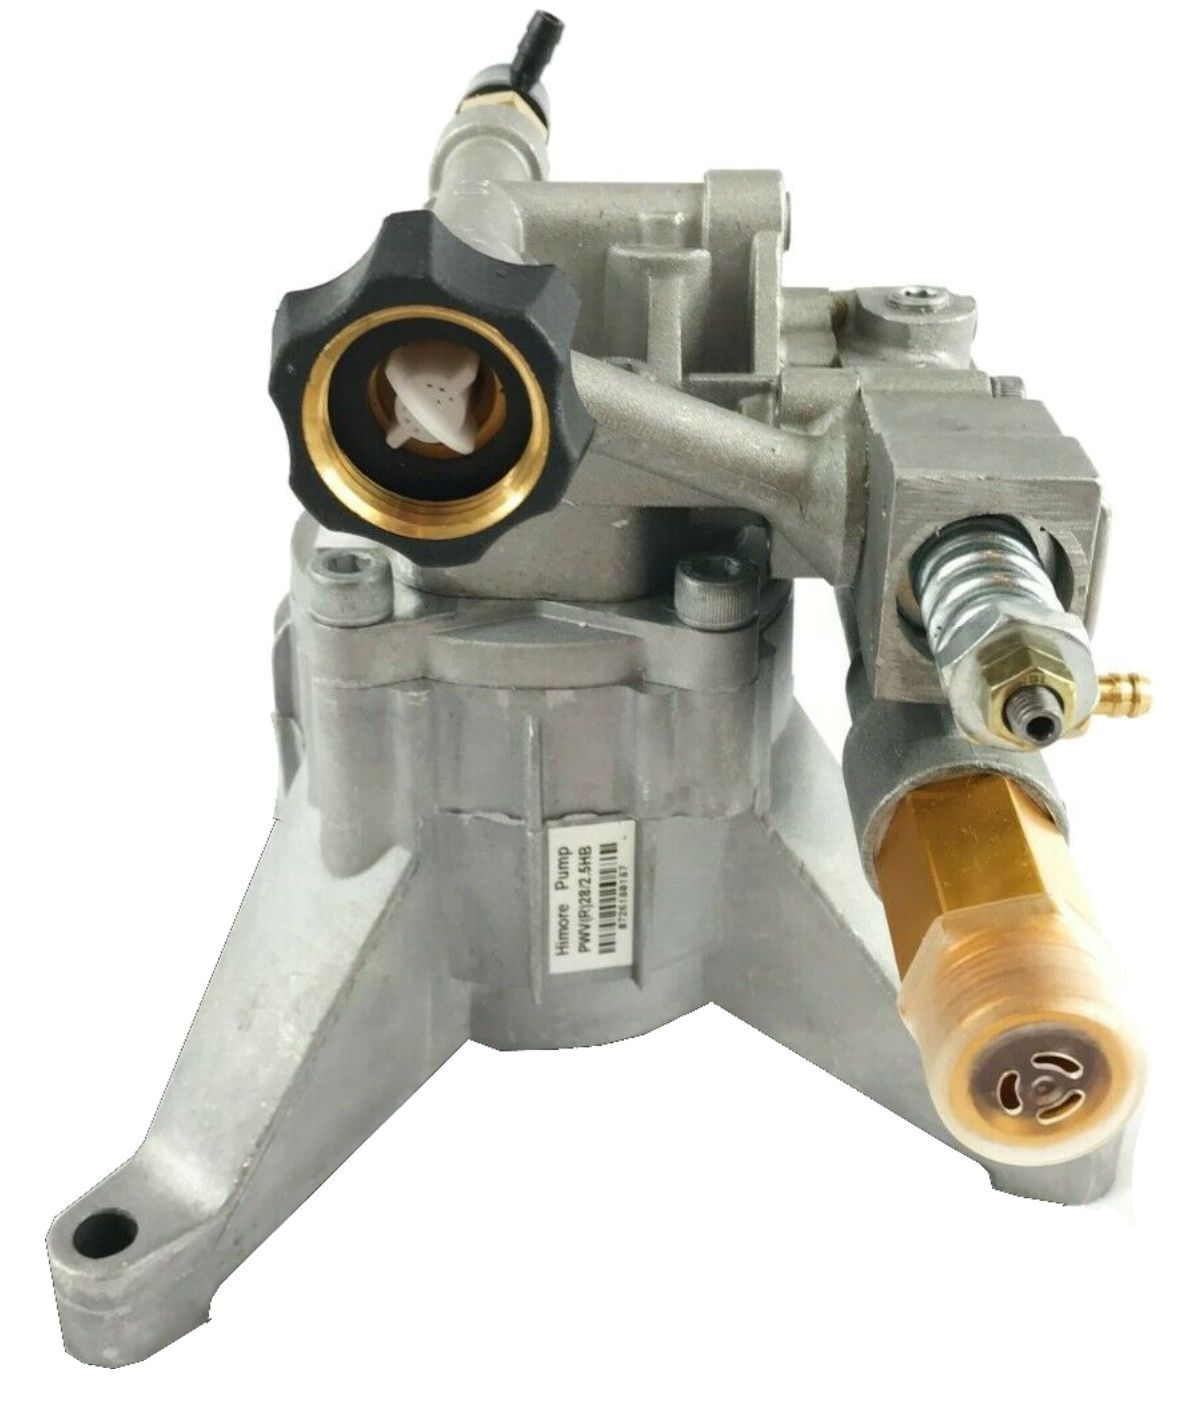 2700 PSI PRESSURE WASHER WATER PUMP fits Generac 580.768020 580.768210 - AE-Power